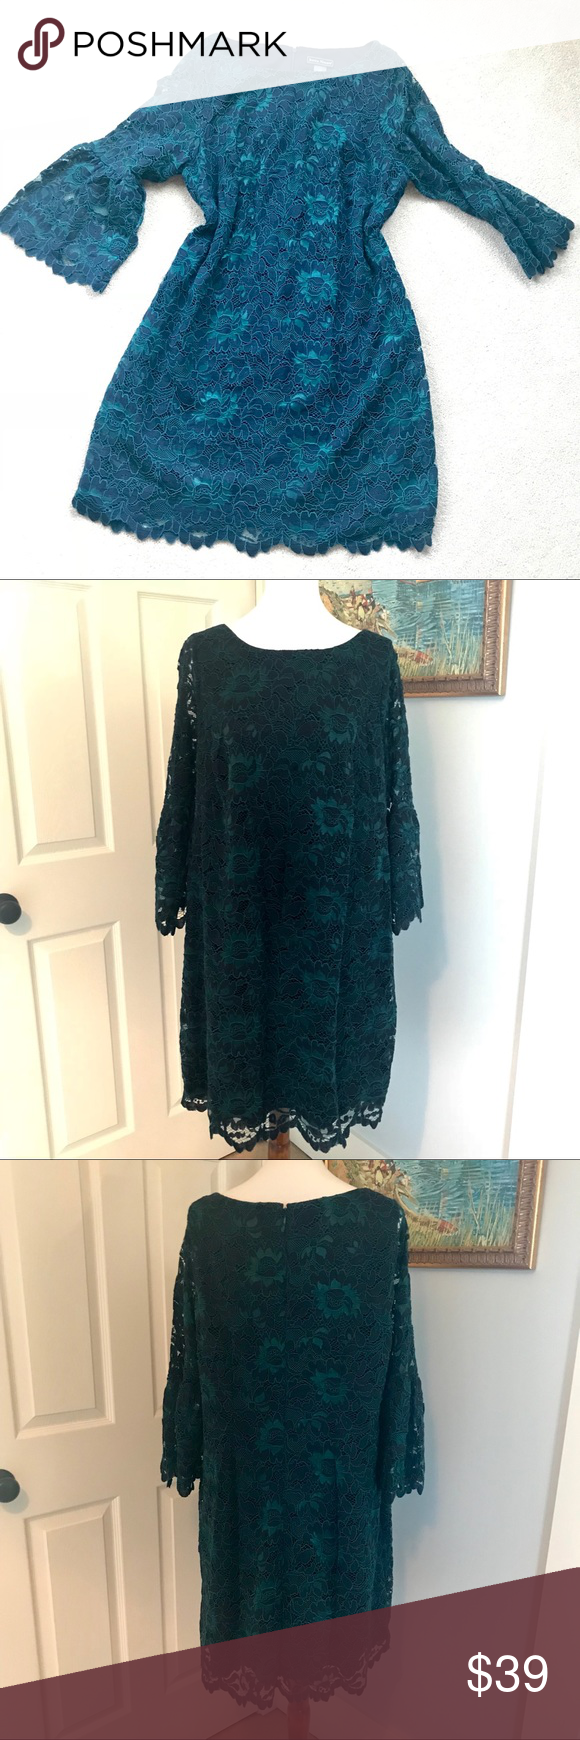 Green dress with lace overlay  Jessica Howard Plus w green lace dress EUC in   My Posh